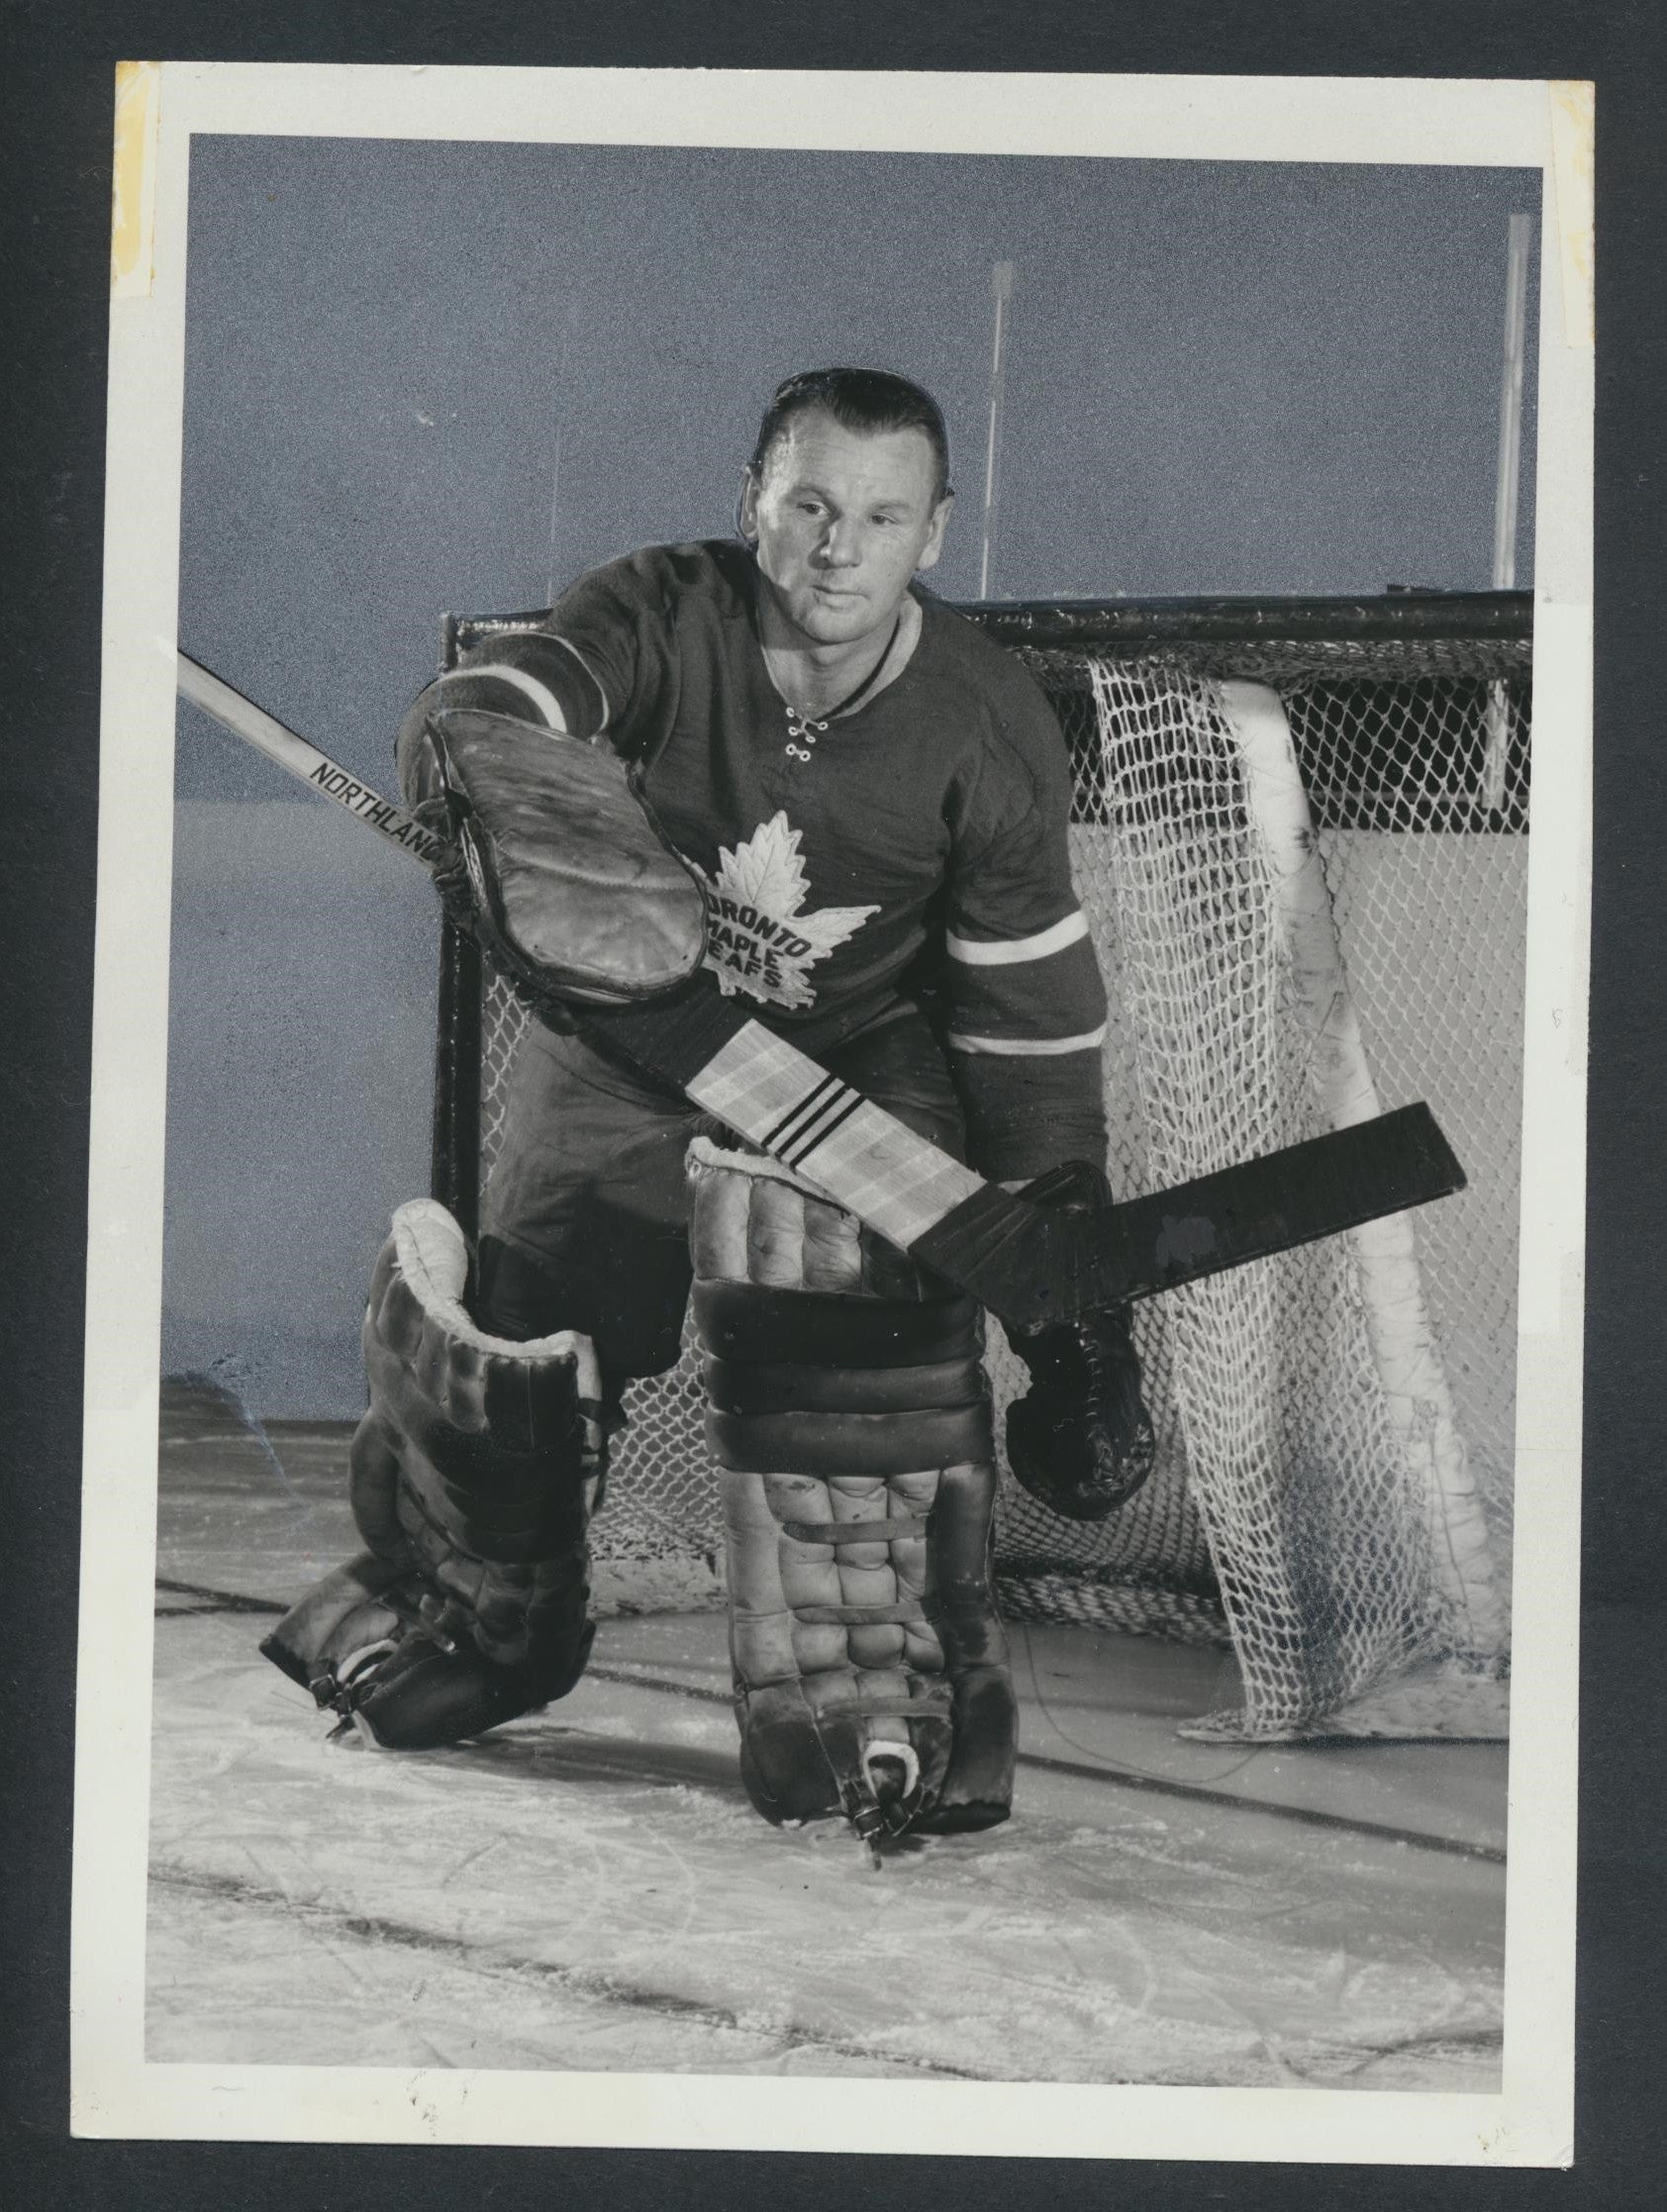 Original Vintage Johnny Bower HOF Toronto Maple Leafs  TUROFSKY Press Photo  NHL Hockey Memorabilia